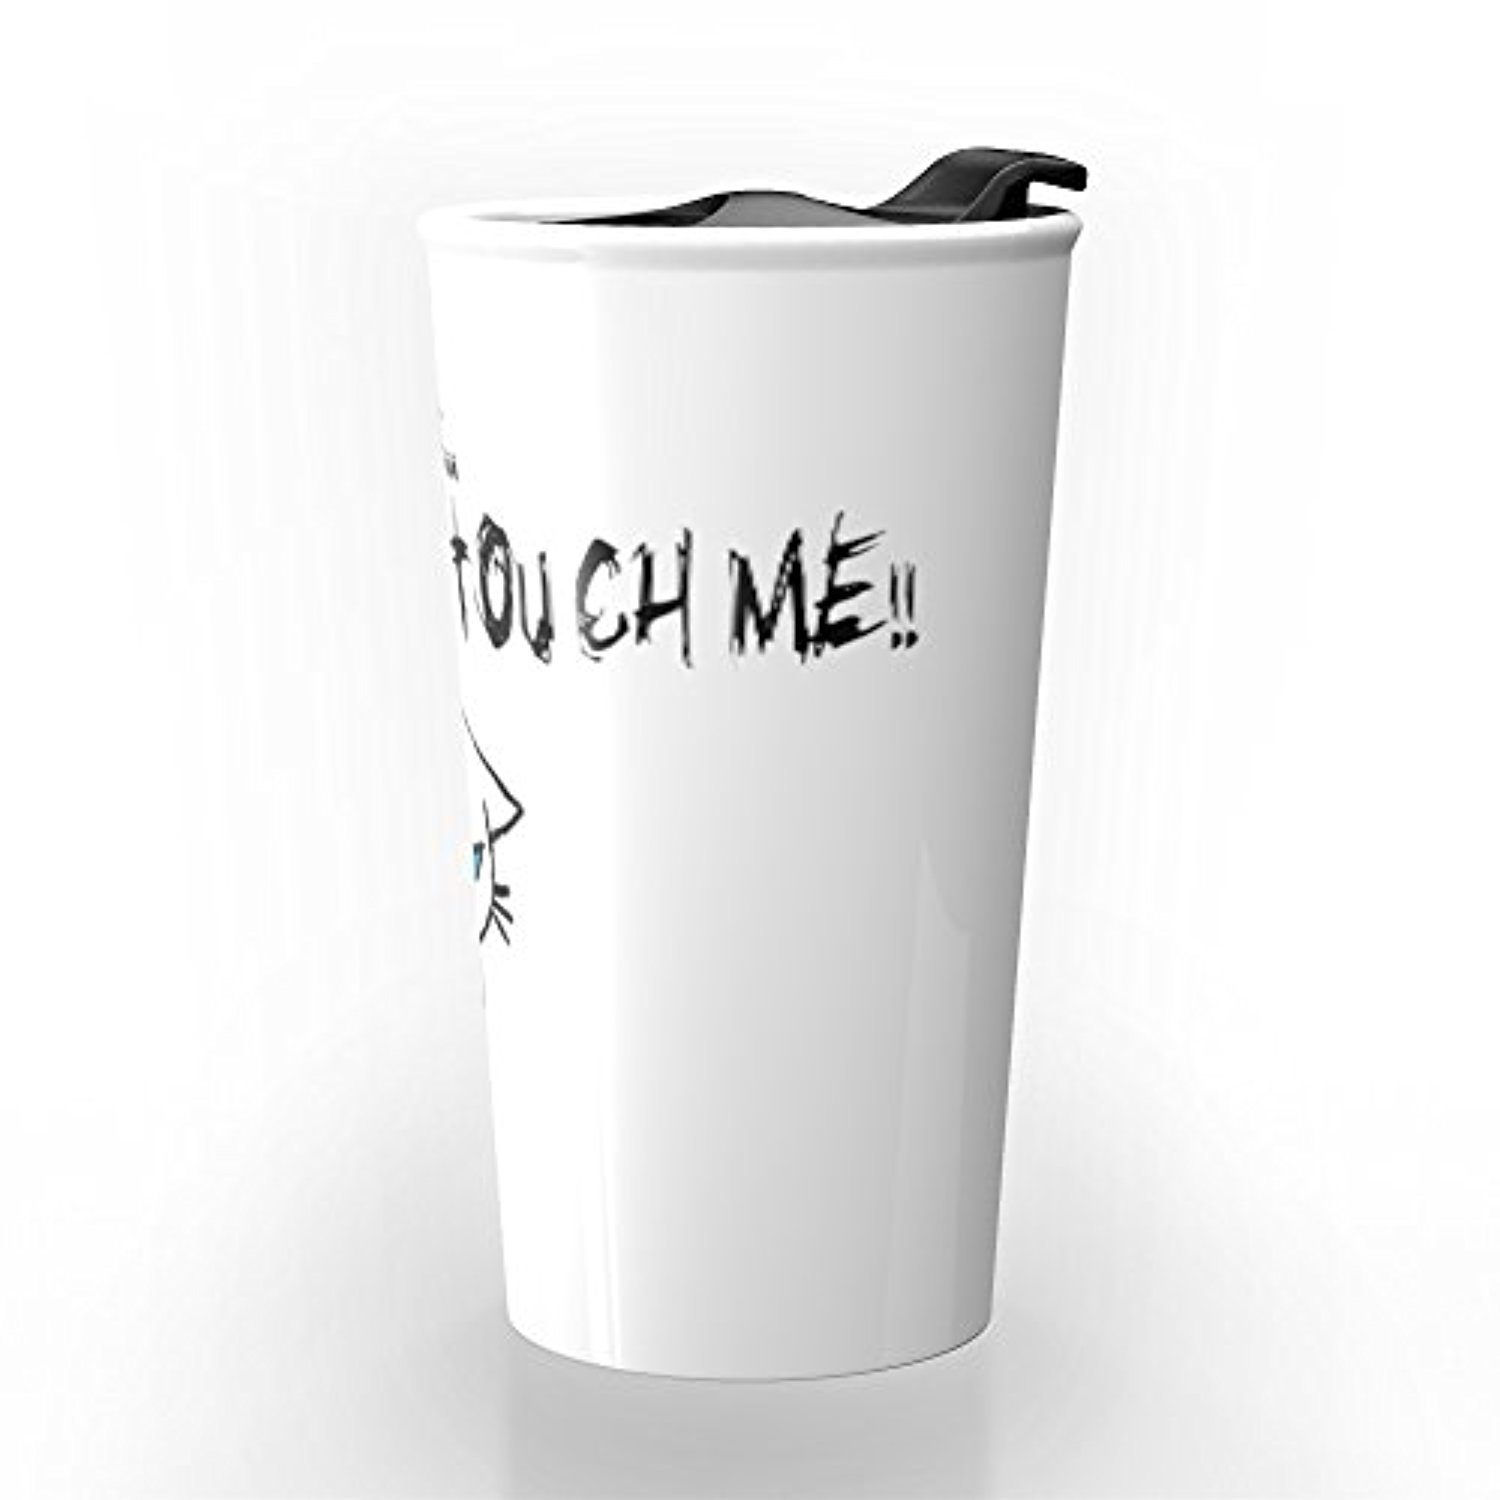 ◎送料込み◎ Society6 Don't Touch Me! Travel Mug 12 oz